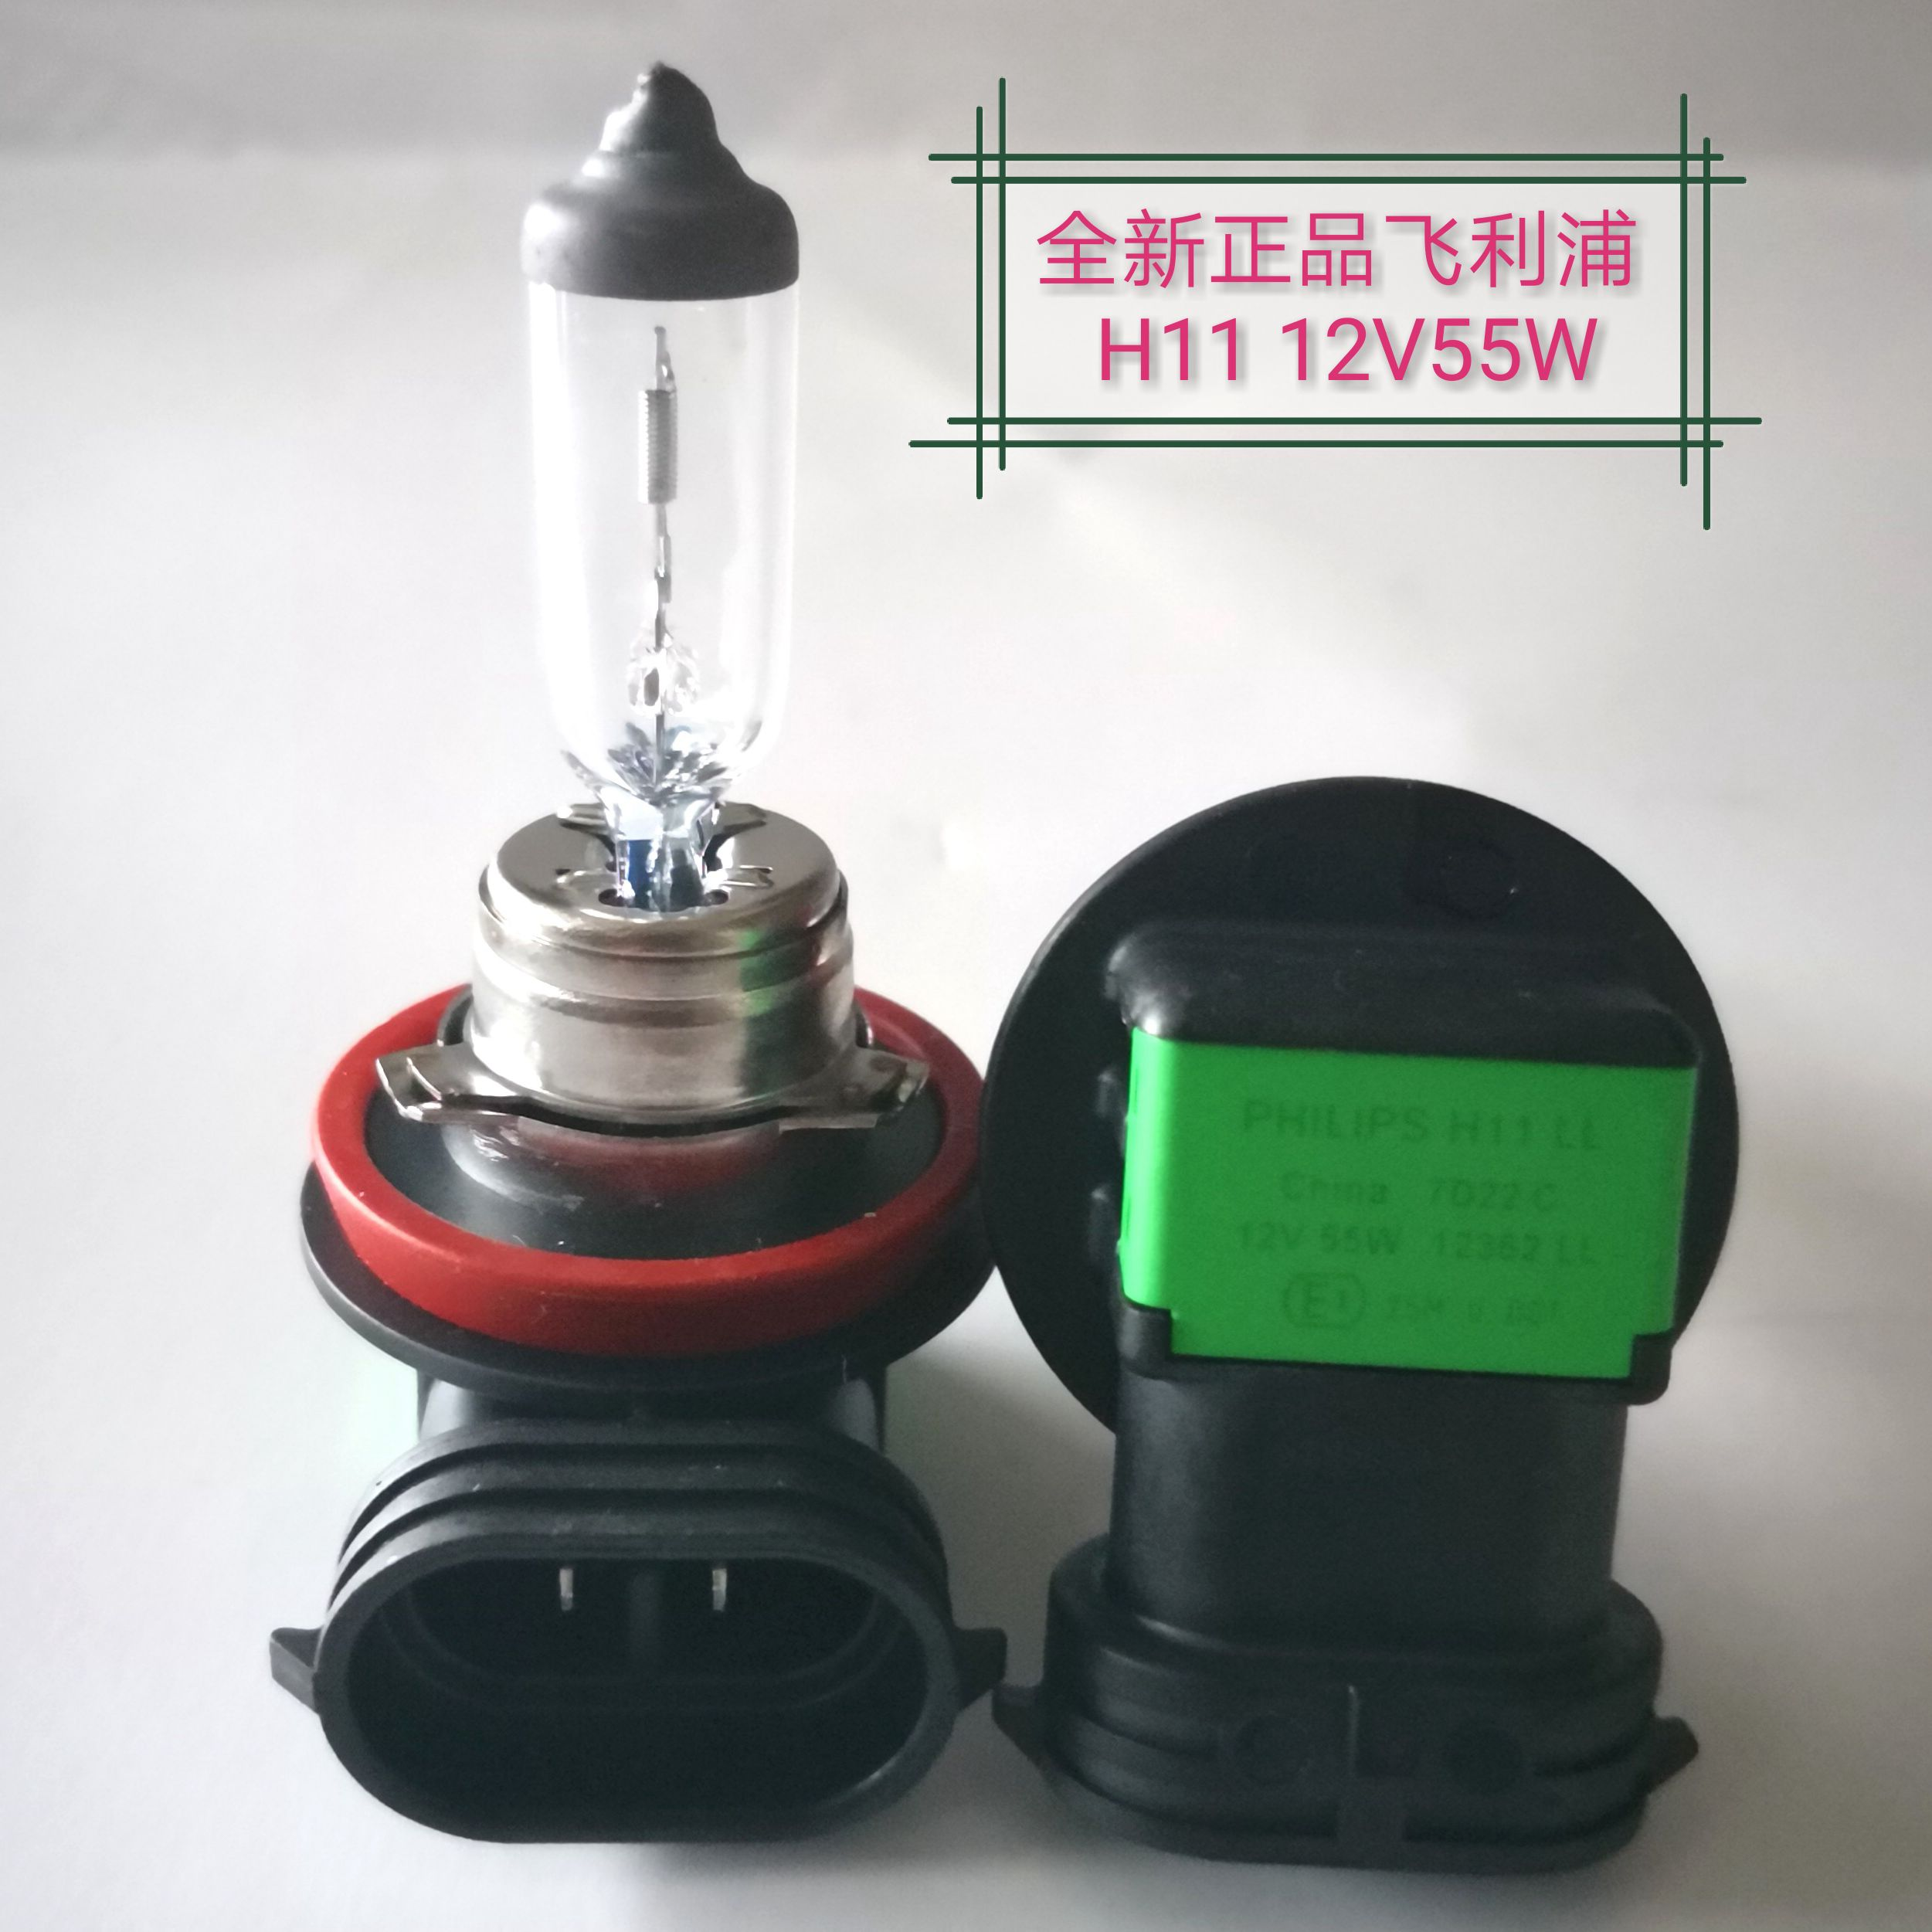 Genuine Philips car bulb H11 12v55w low beam fog lamp 12362ll large quantity of headlamp package discount